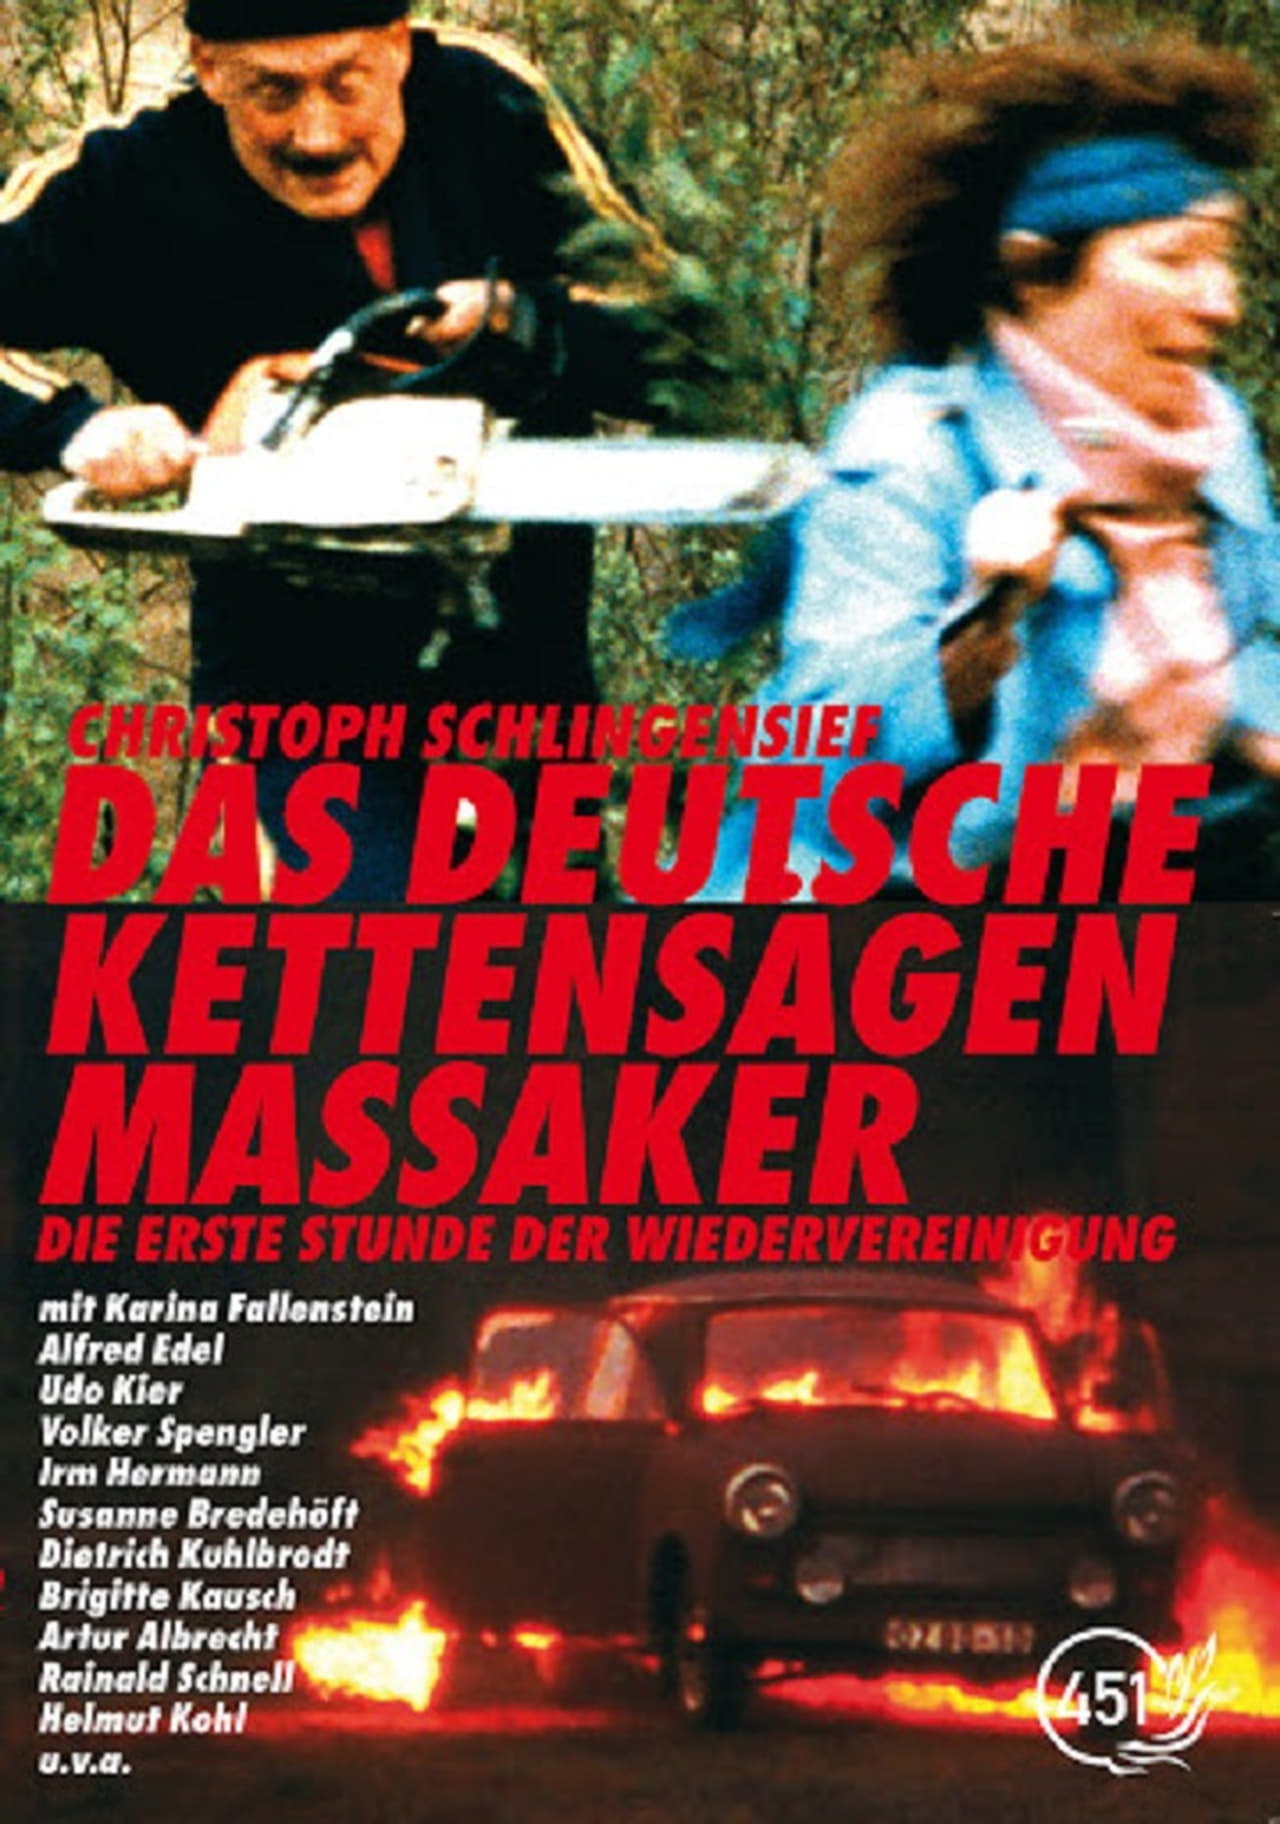 The German Chainsaw Massacre